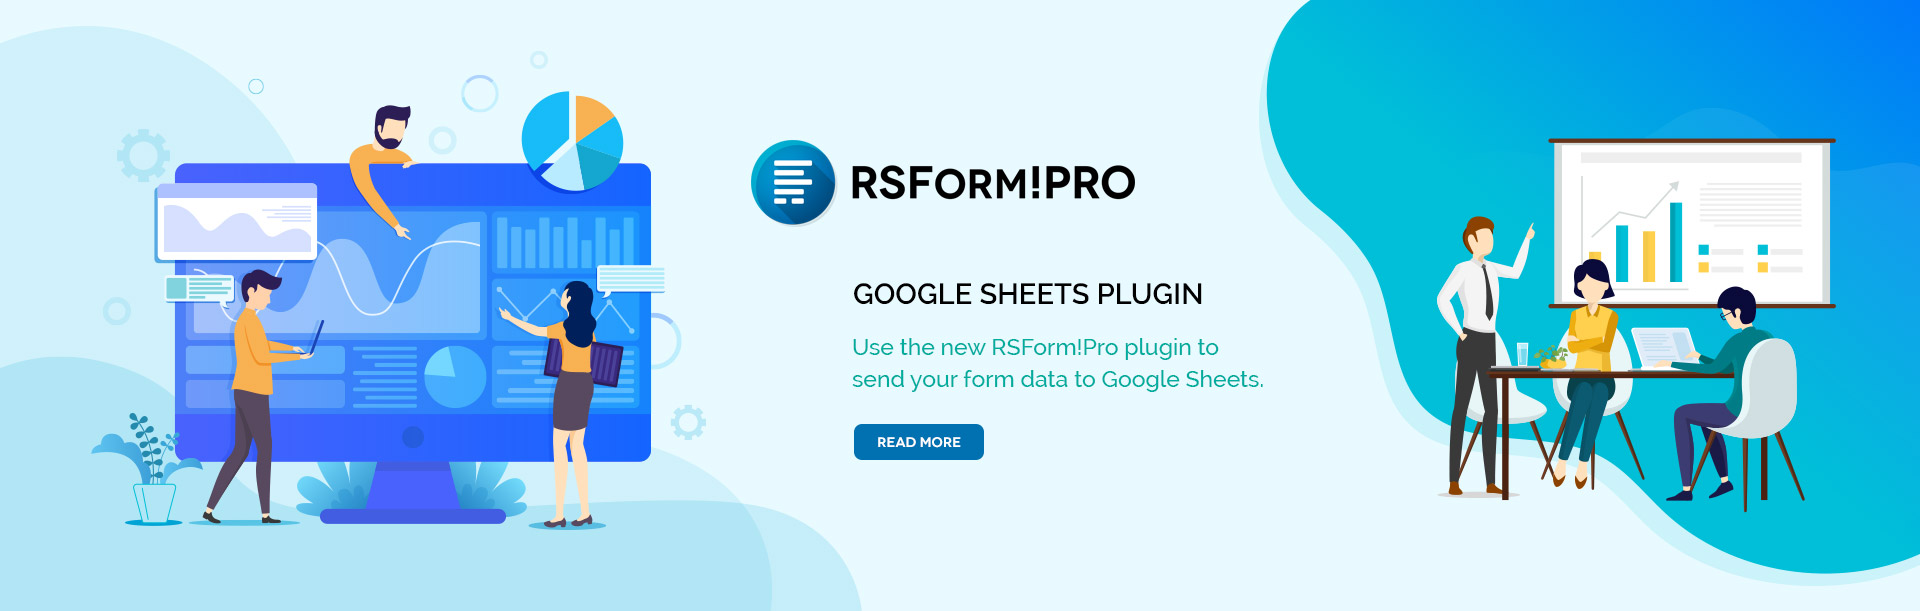 RSForm!Pro Google Sheets plugin